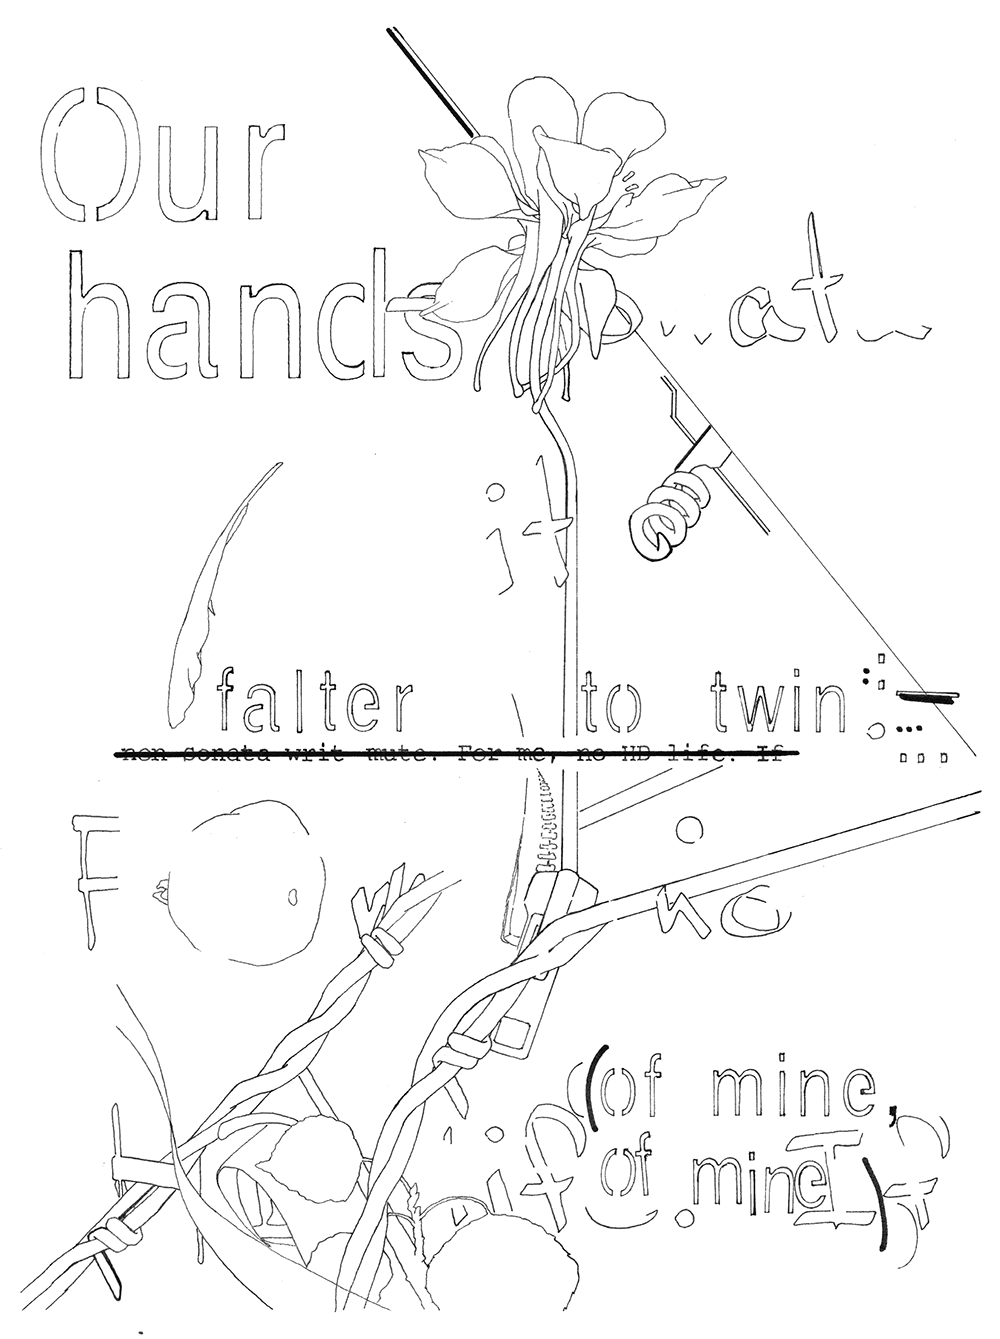 """Black and white line drawing with unidentifiable, outlined letters. One can make out """"Our / hands at / it,"""" """"falter to twin,"""" """"non sonata writ mute. For me, no HD life. If,"""" and """"of mine / of mine"""""""